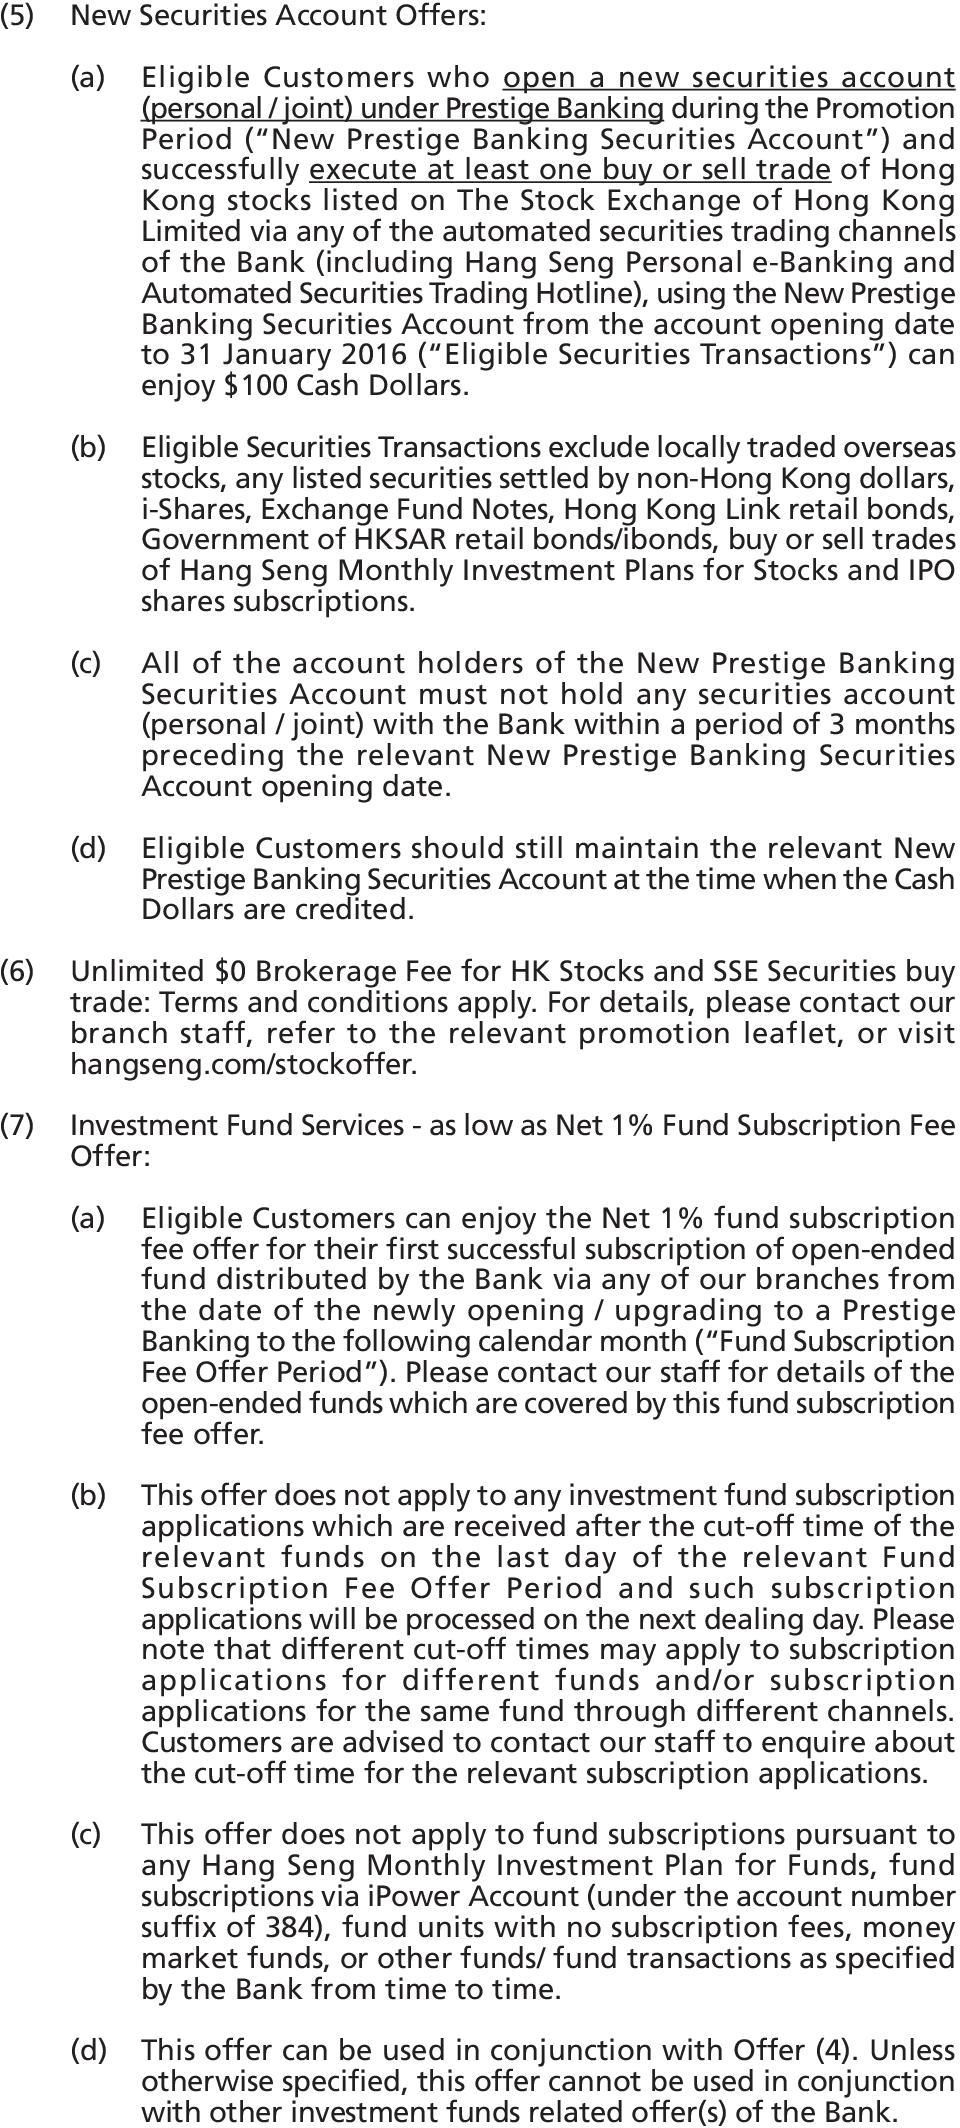 Bank (including Hang Seng Personal e-banking and Automated Securities Trading Hotline), using the New Prestige Banking Securities Account from the account opening date to 31 January 2016 ( Eligible